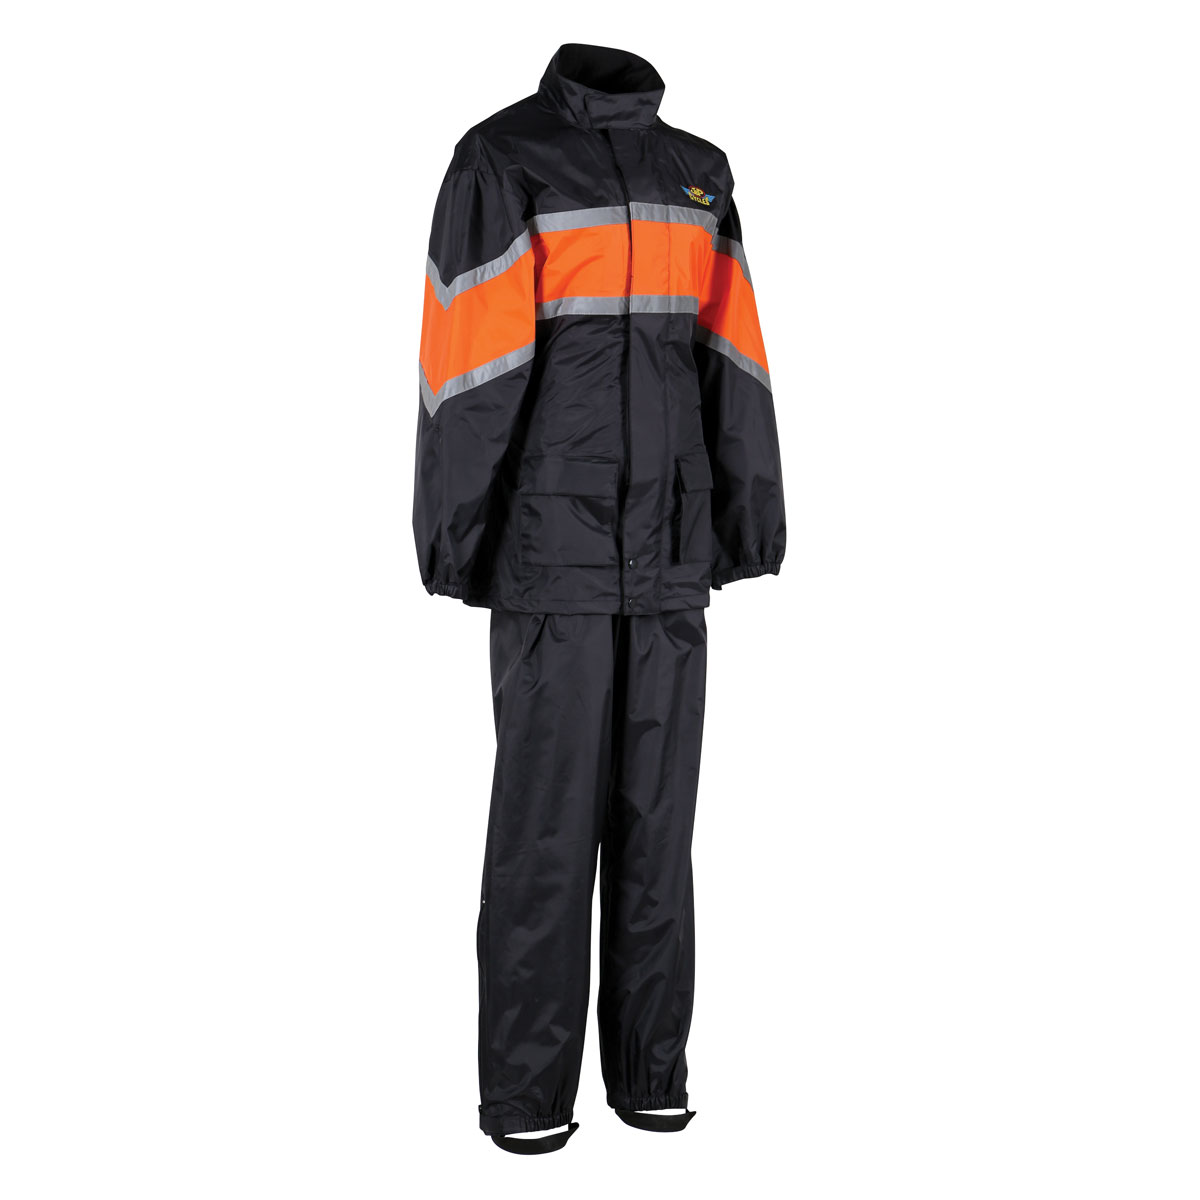 J&P Cycles® 2-Piece Top Quality Rain Suit